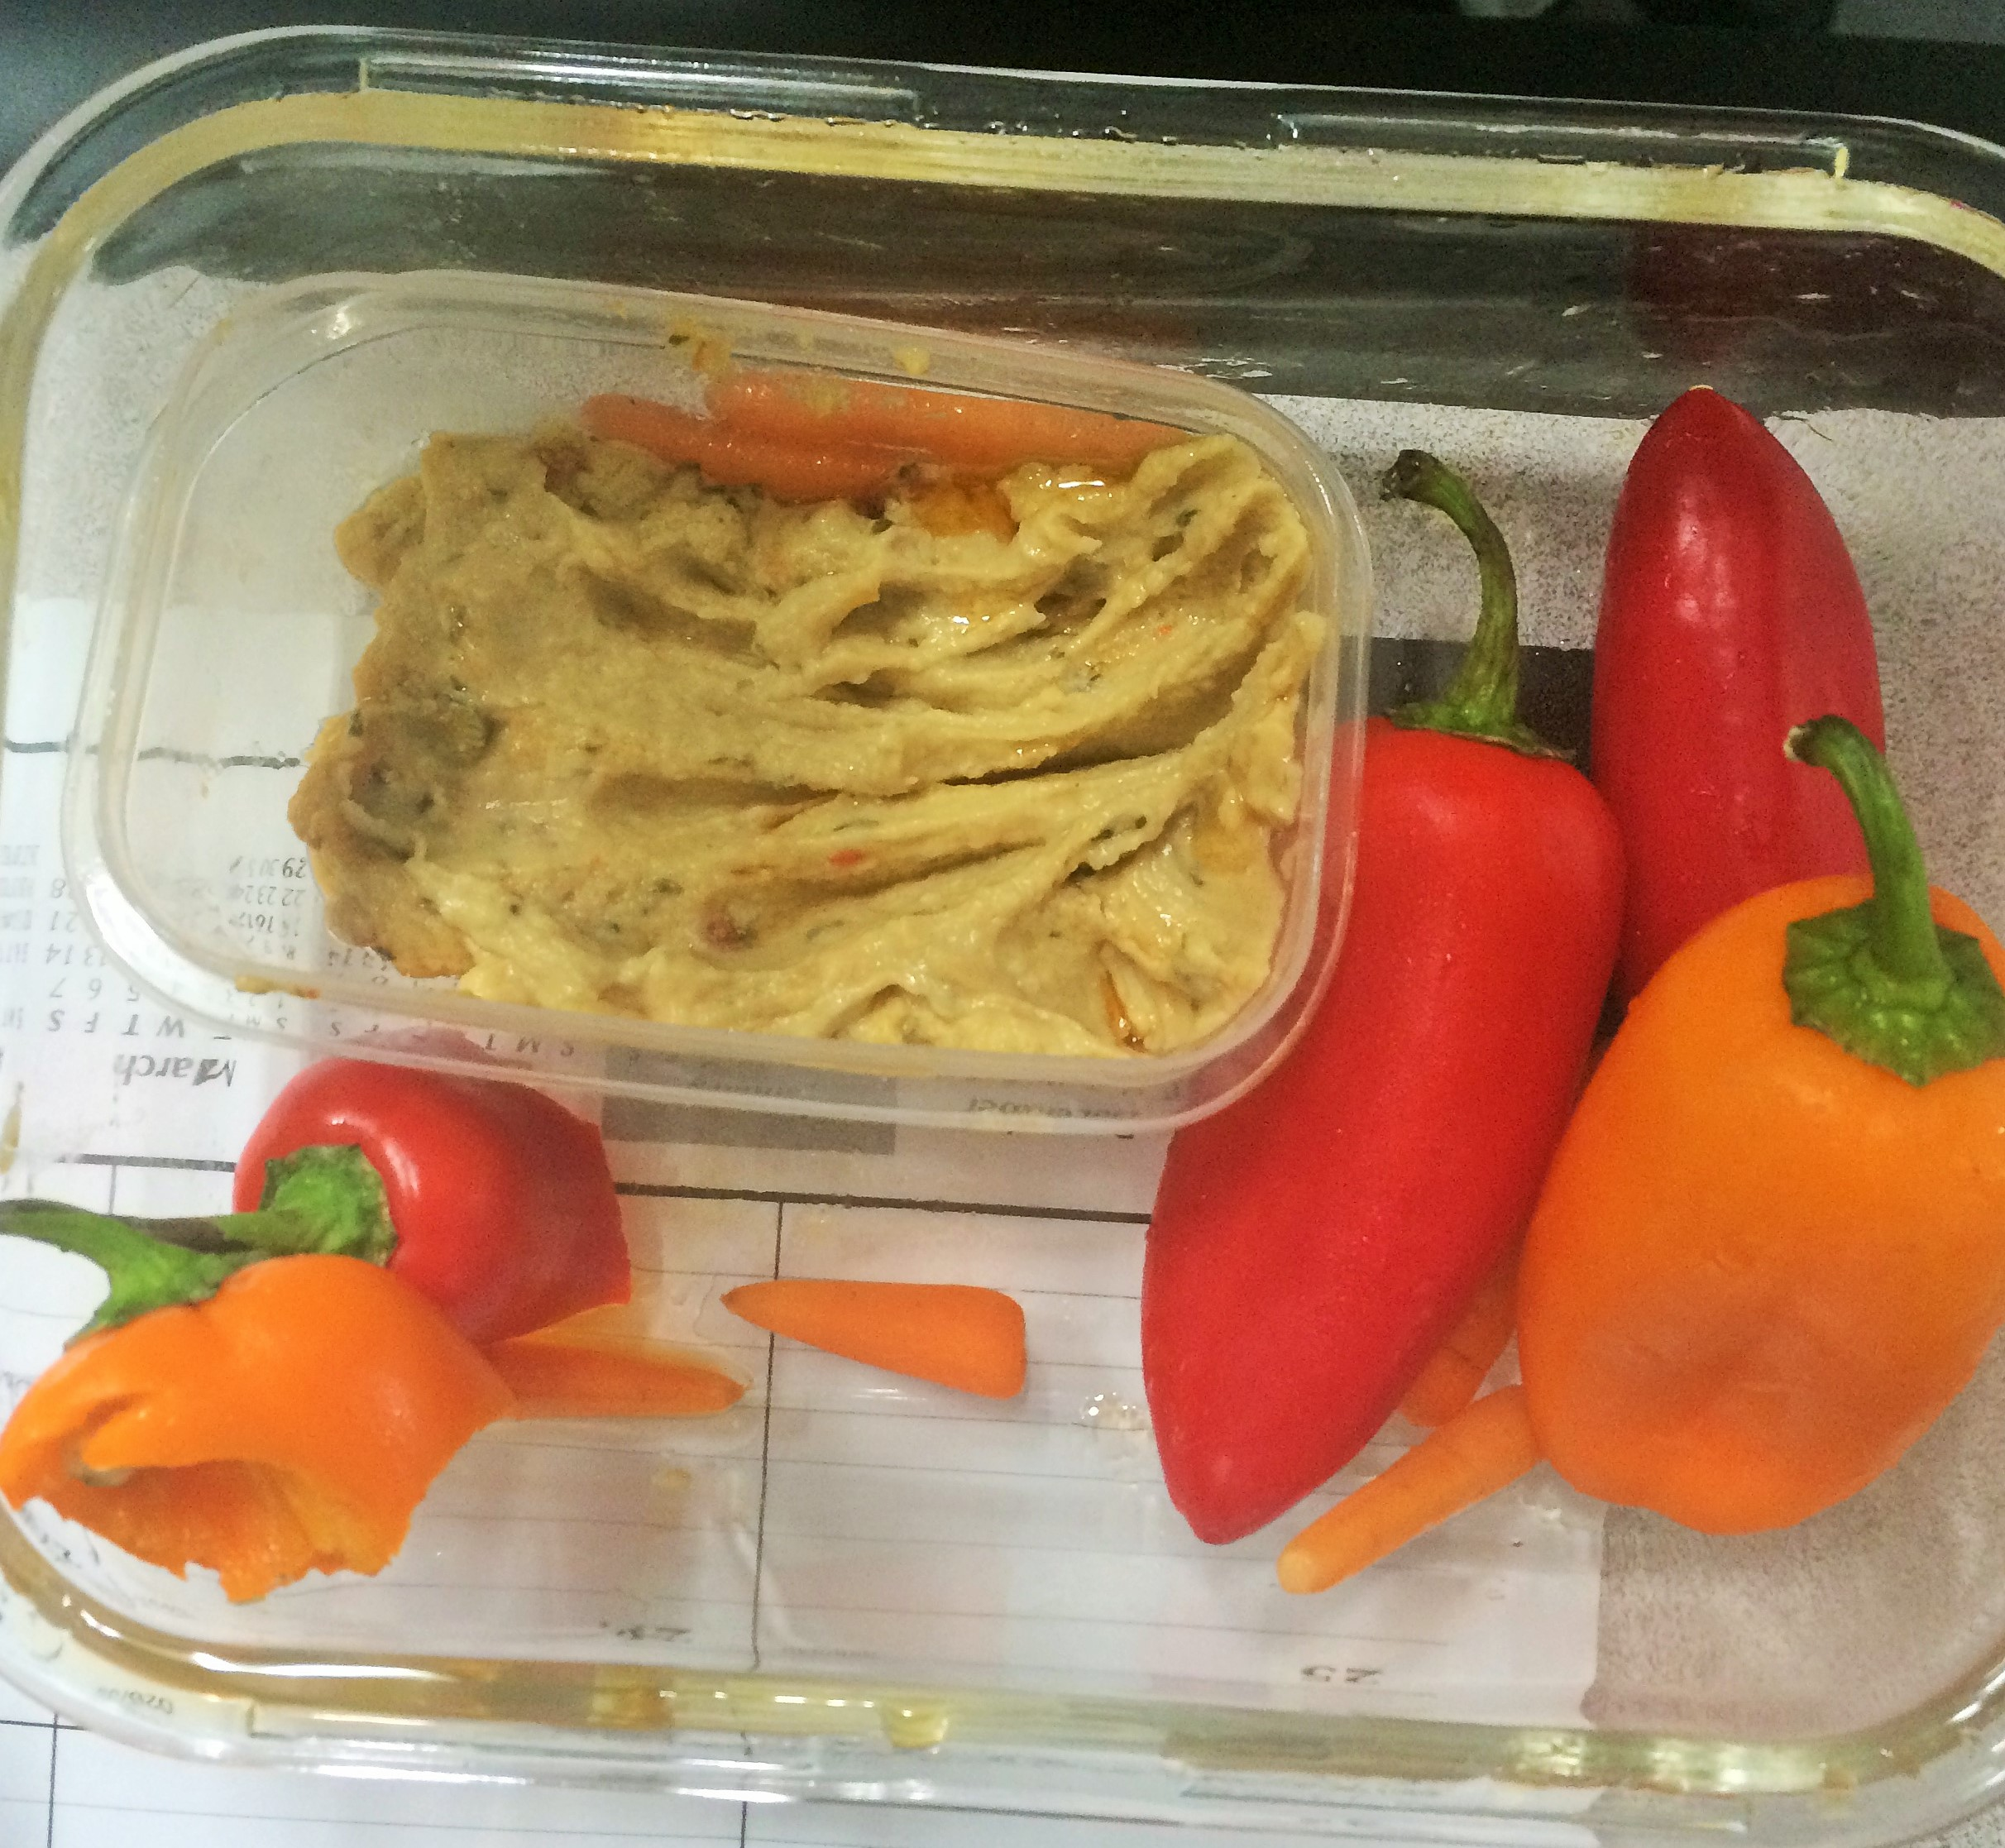 Half-eaten lunch of baby carrots, mini bell peppers and hummus